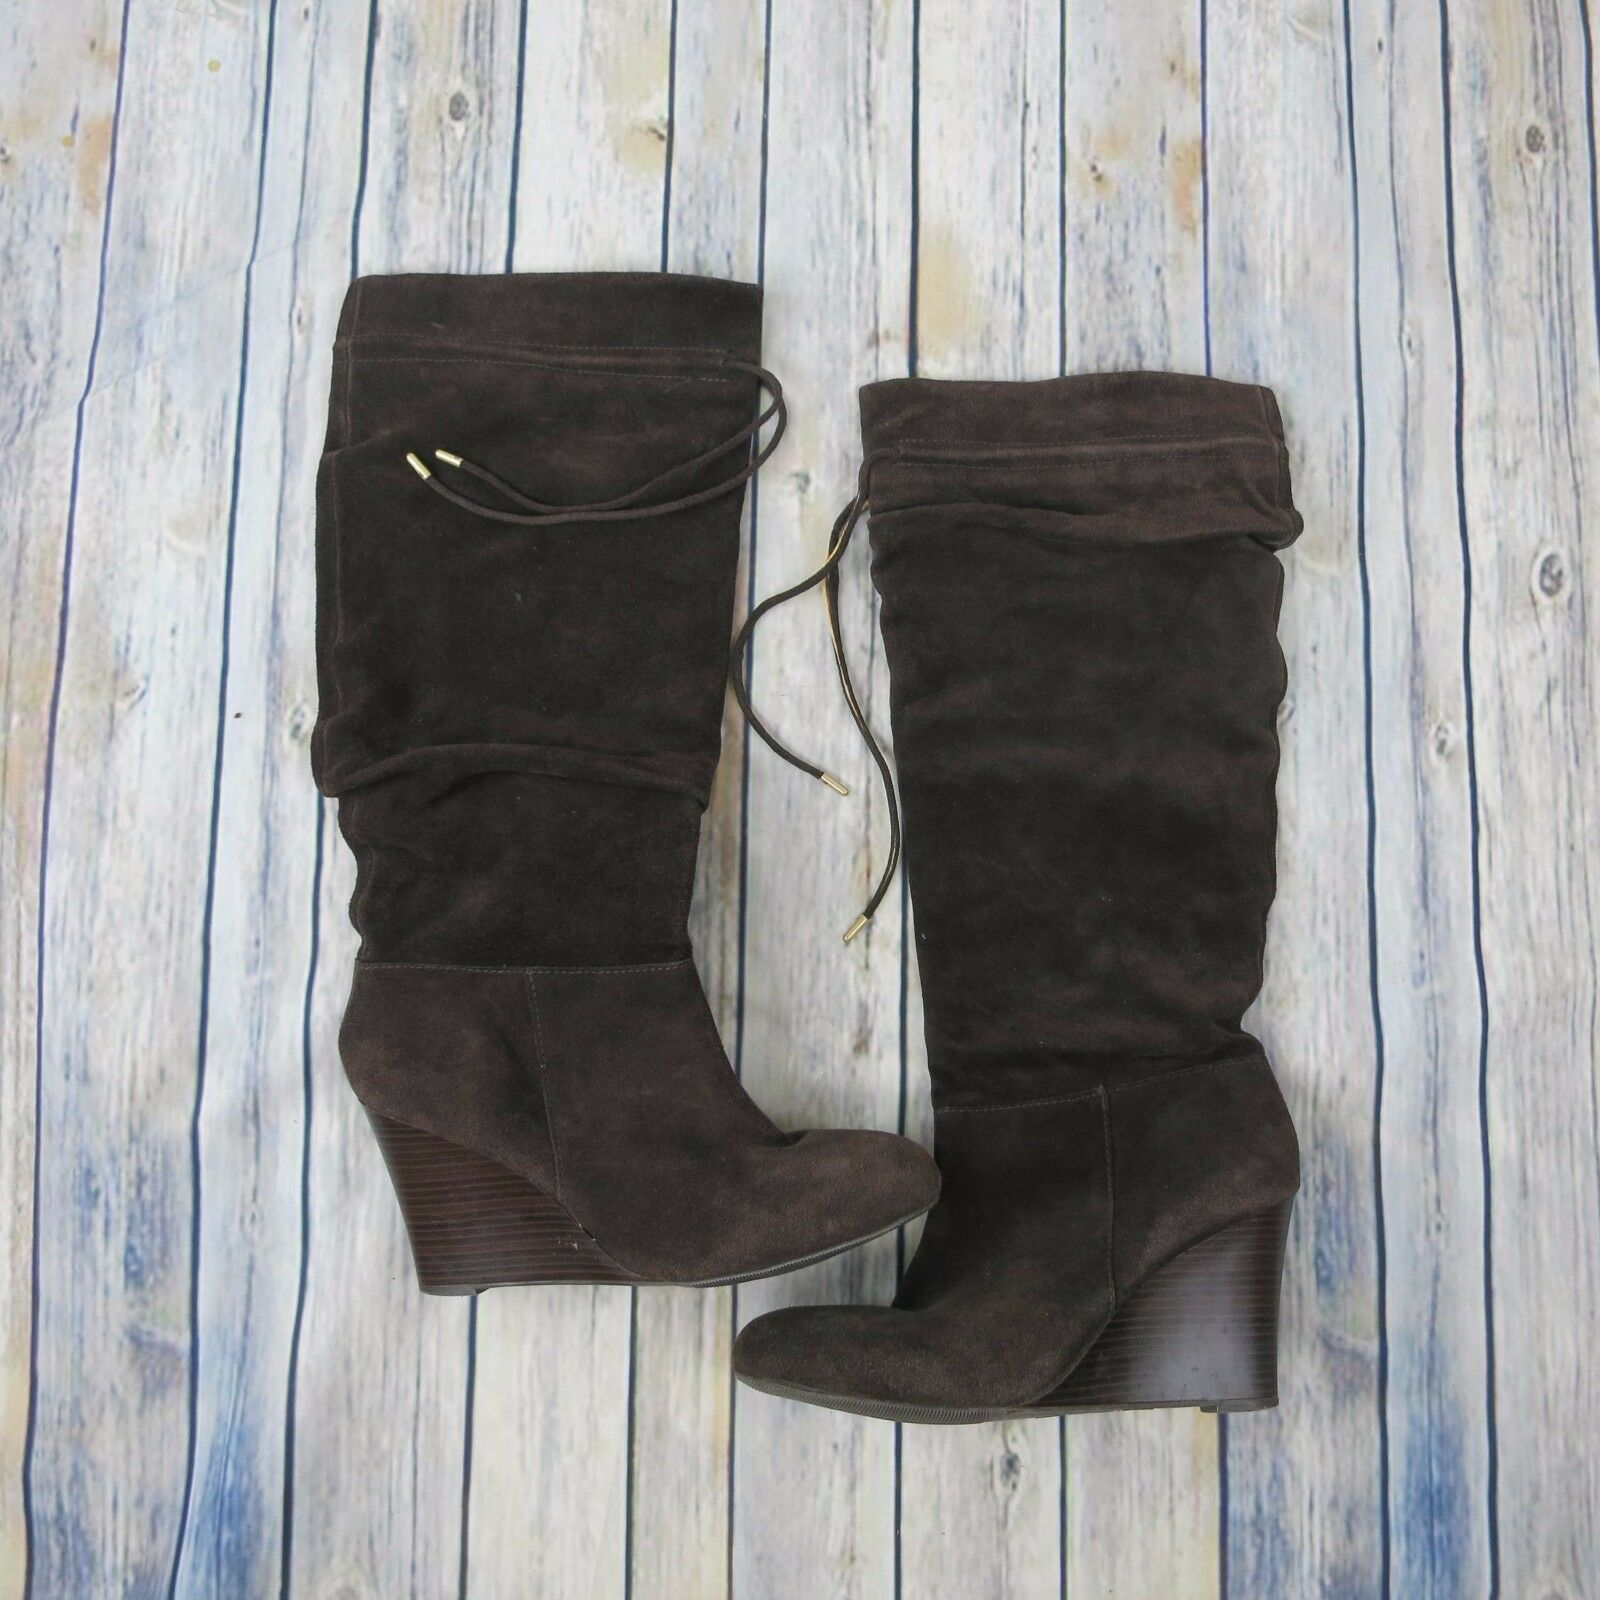 INC International Concepts Maia Boots 10 Knee HighBrown Suede Wedge Slouchy